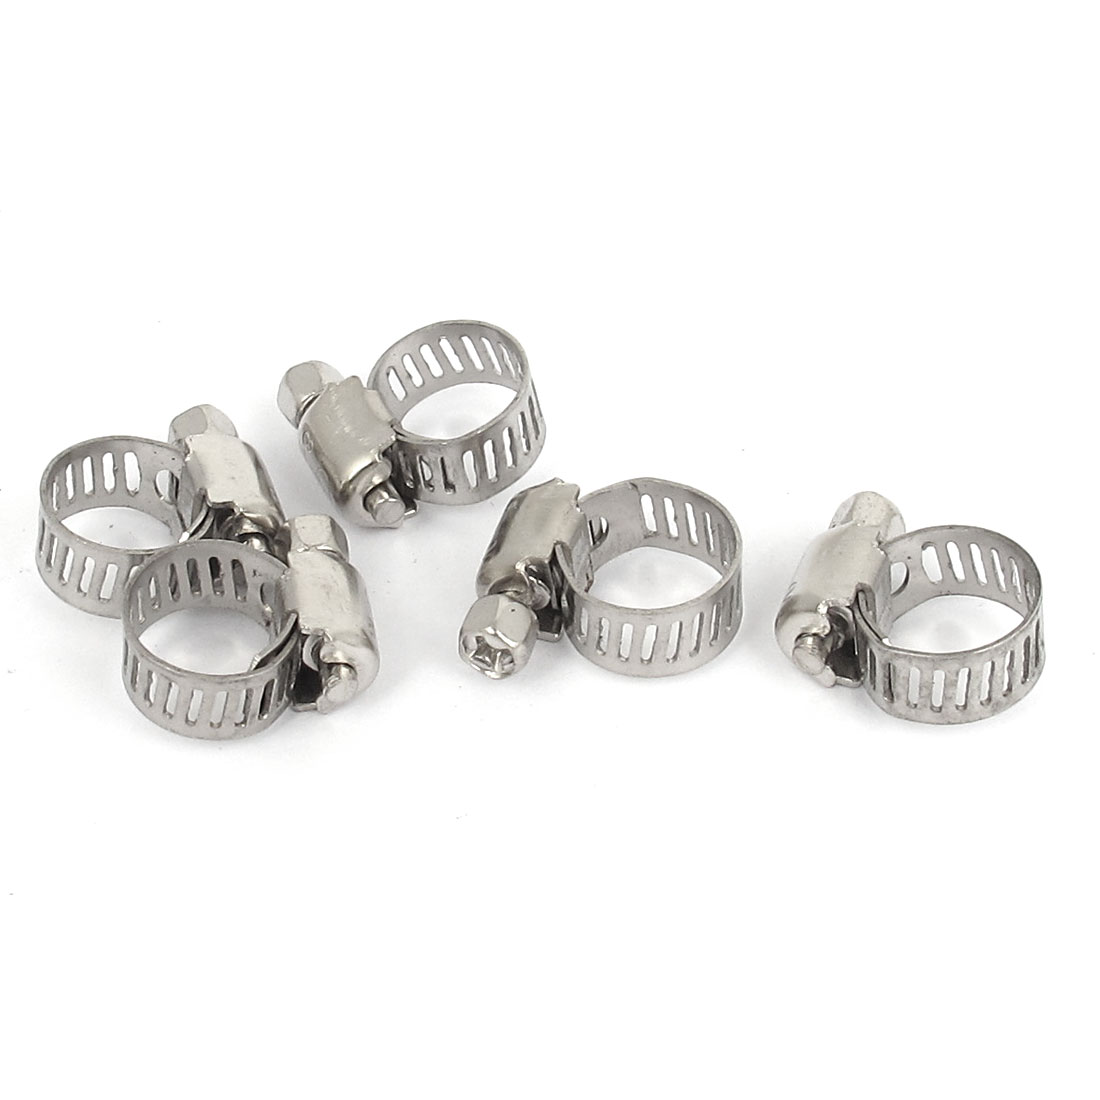 8mm to 12mm Range 8mm Band Width Stainless Steel Hose Pipe Clamp Hoop 5pcs